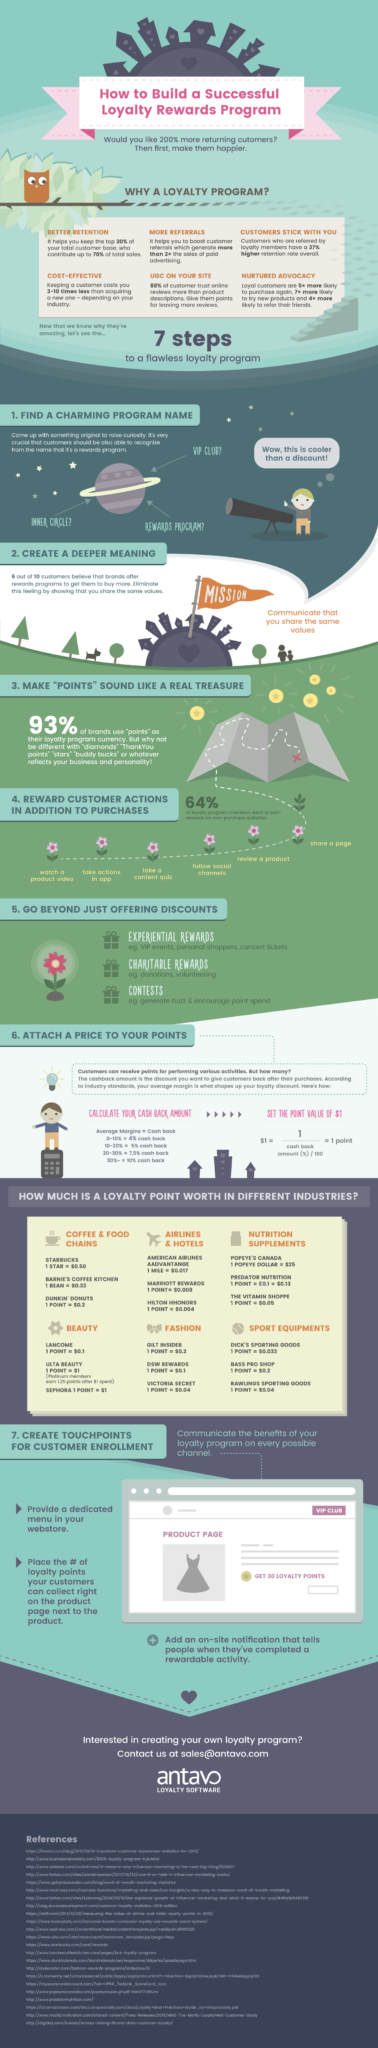 loyalty-rewards-program-infographic